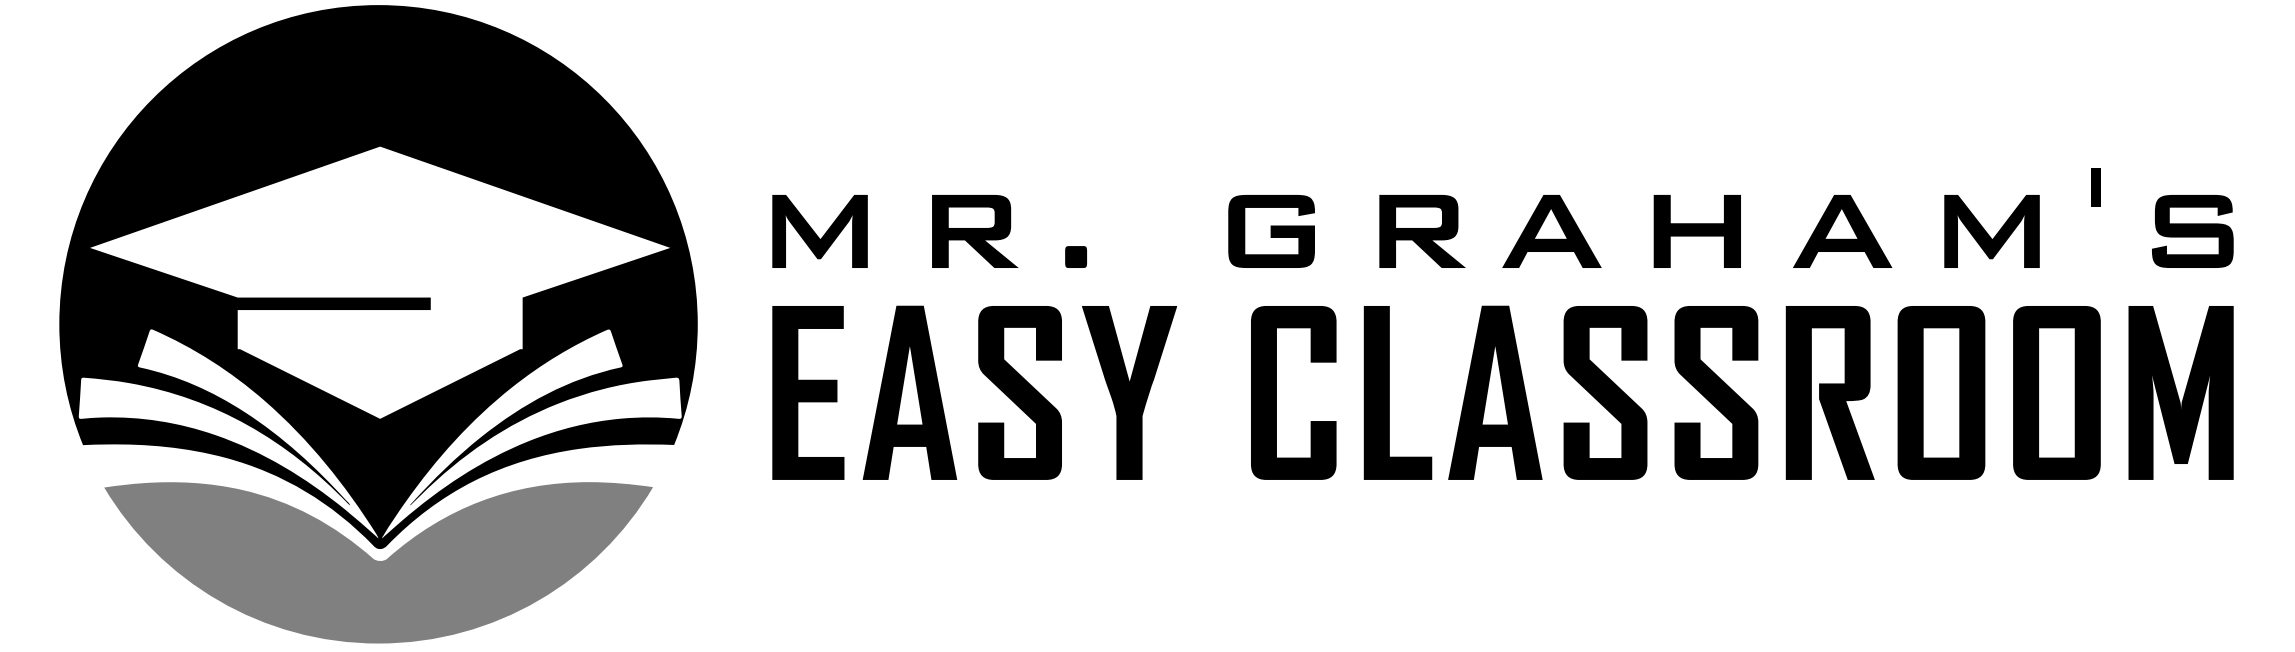 Mr. Graham's Easy Classroom